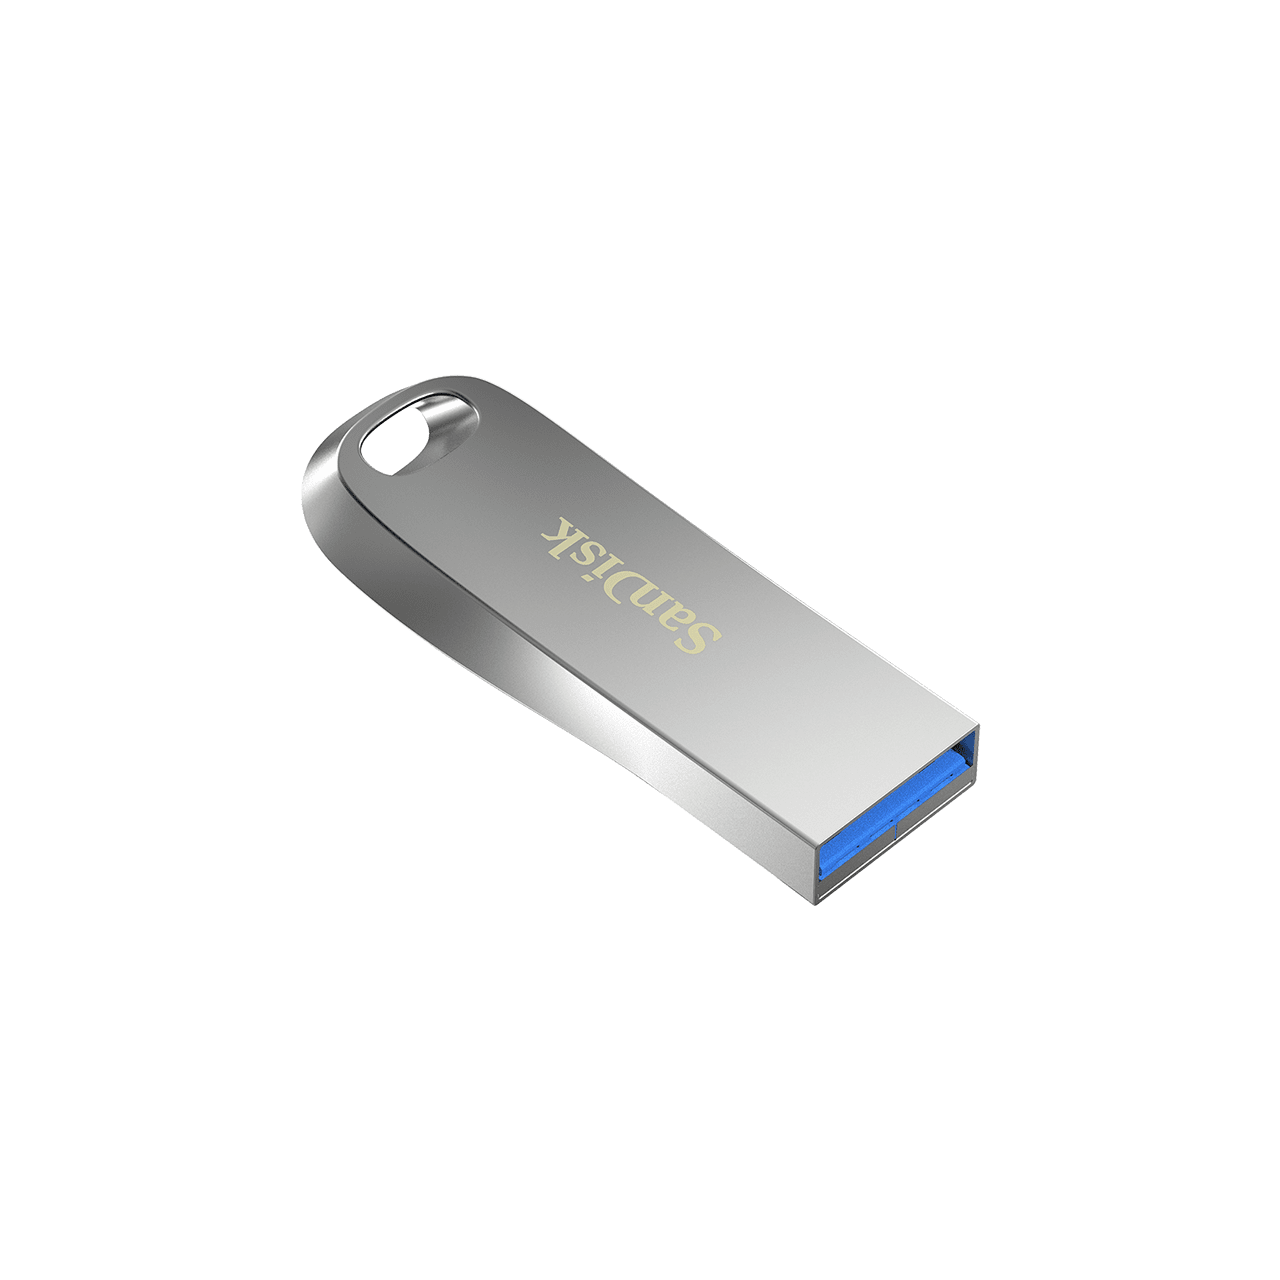 Sandisk 64GB Usb Drive 3.1 Ultra Luxe